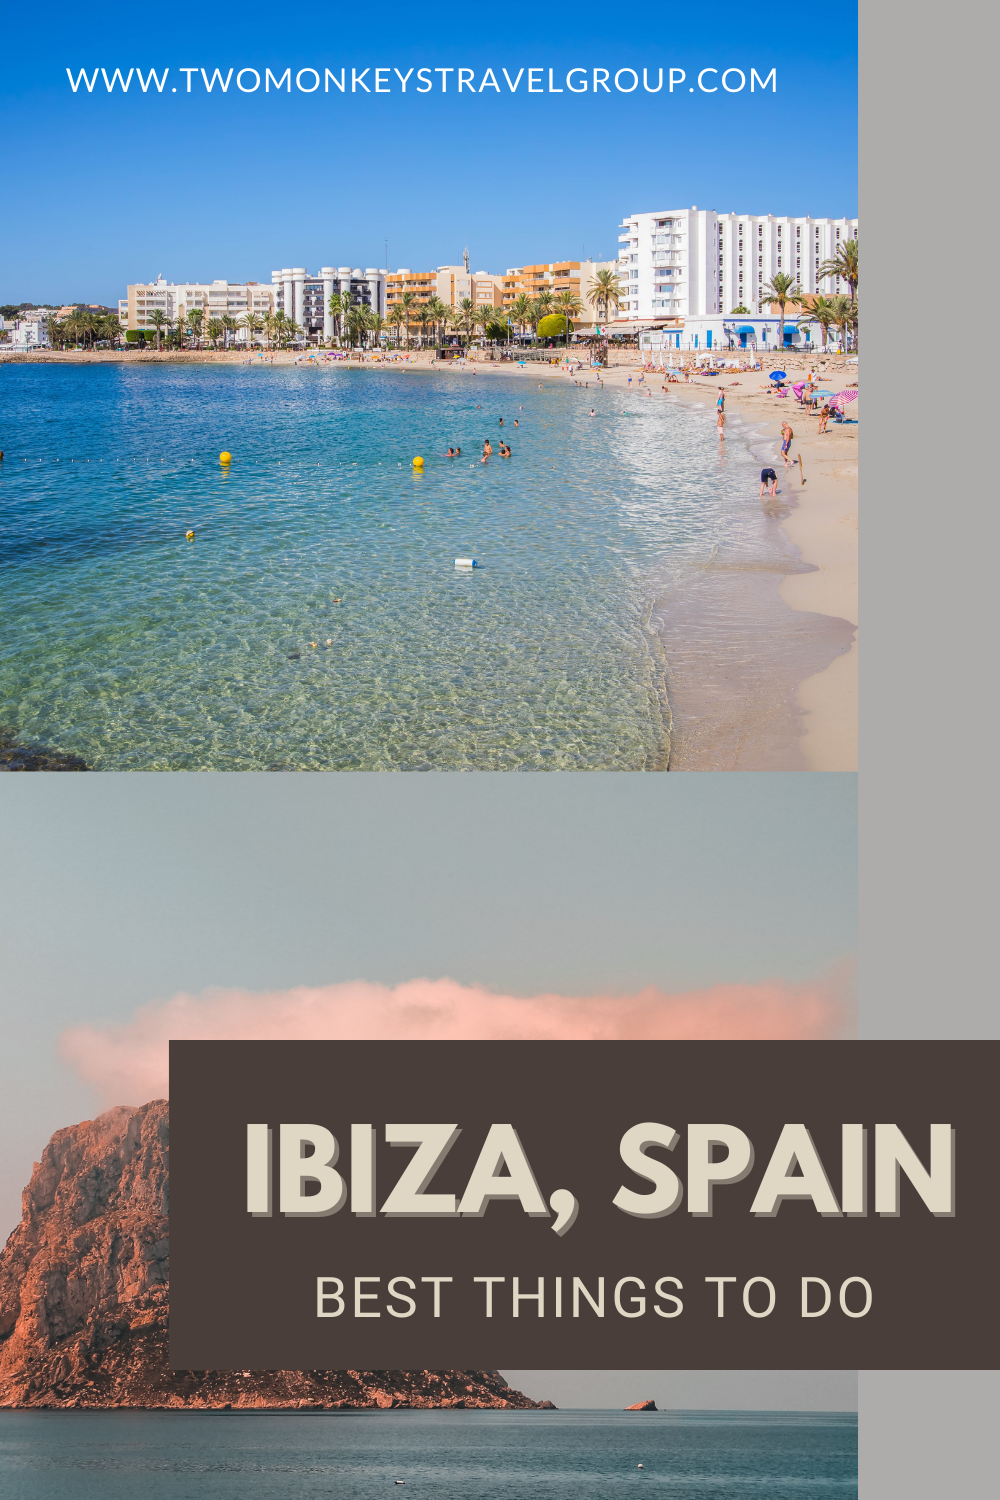 10 Best Things to do in Ibiza, Spain [with Suggested Tours]